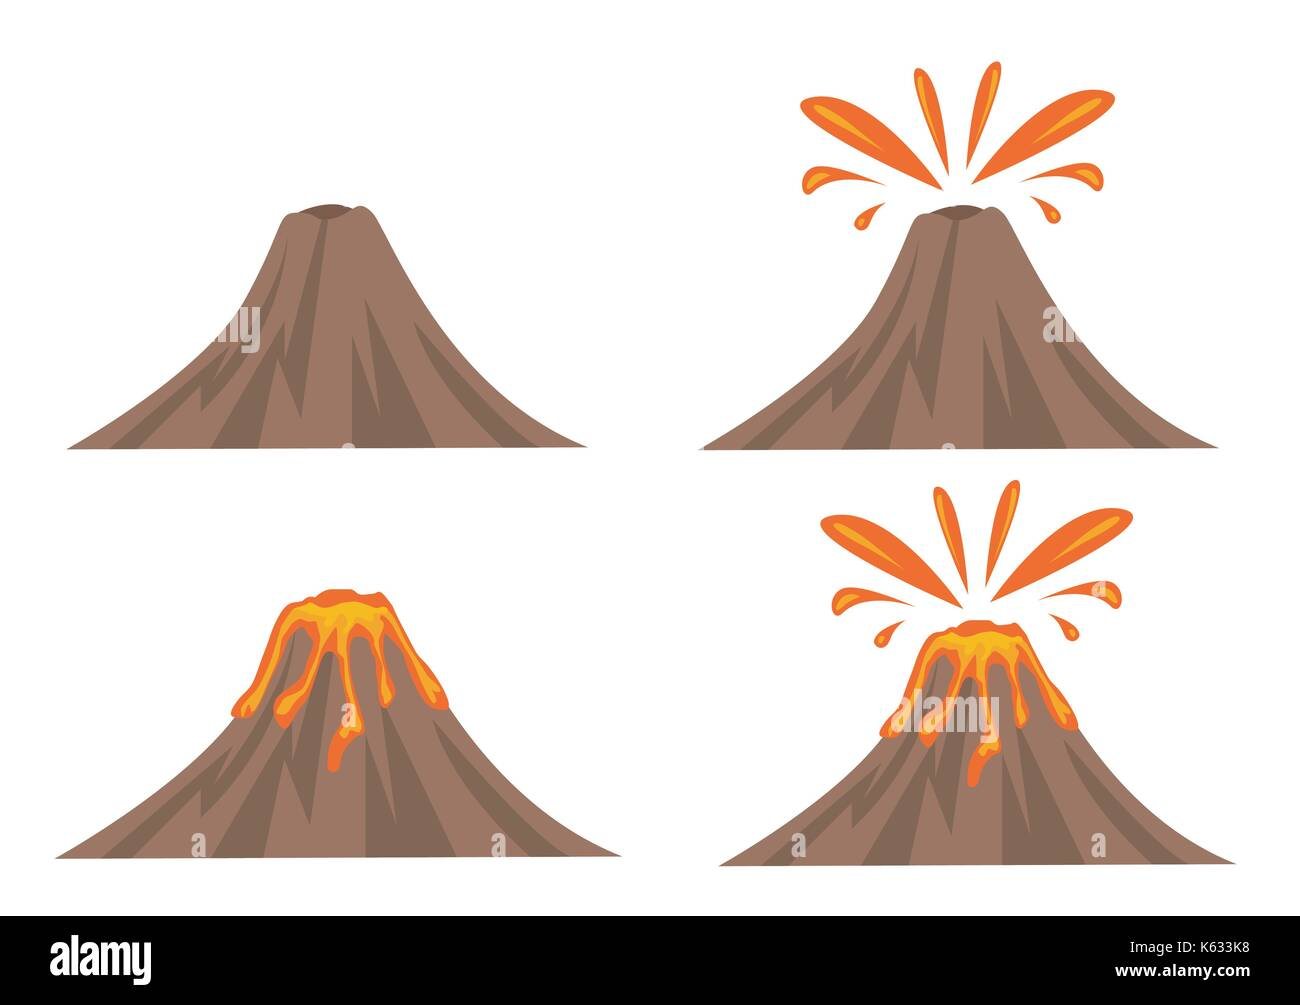 Volcano Icon Set Isolated on White Background - Stock Vector